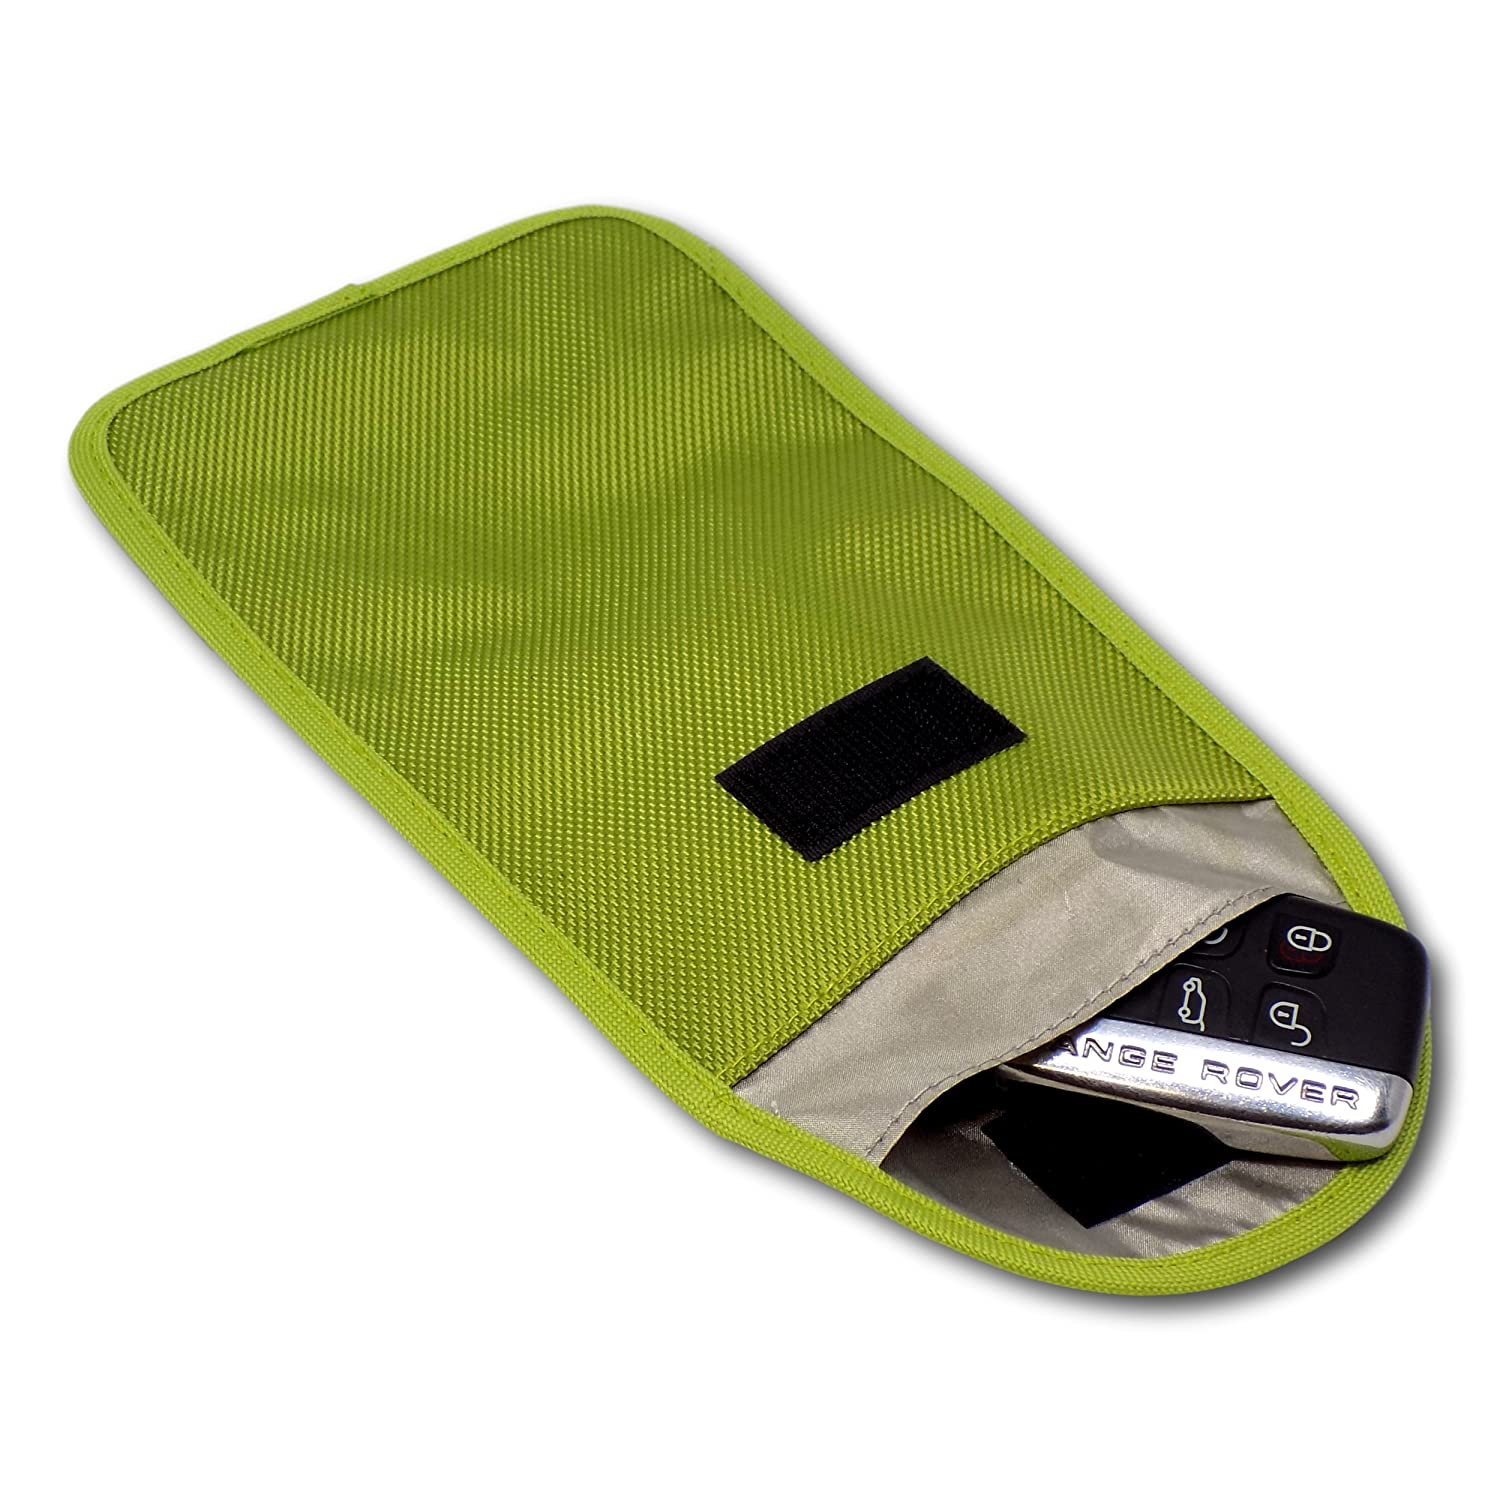 Minder Signal Blocker Signal Jamming Case with RFID Blocking Pouch for Keyless Entry//Start Car Keys and Mobile Phones Faraday Bag Protection Security for WIFI//GSM//LTE//RFID Mini Lime Green